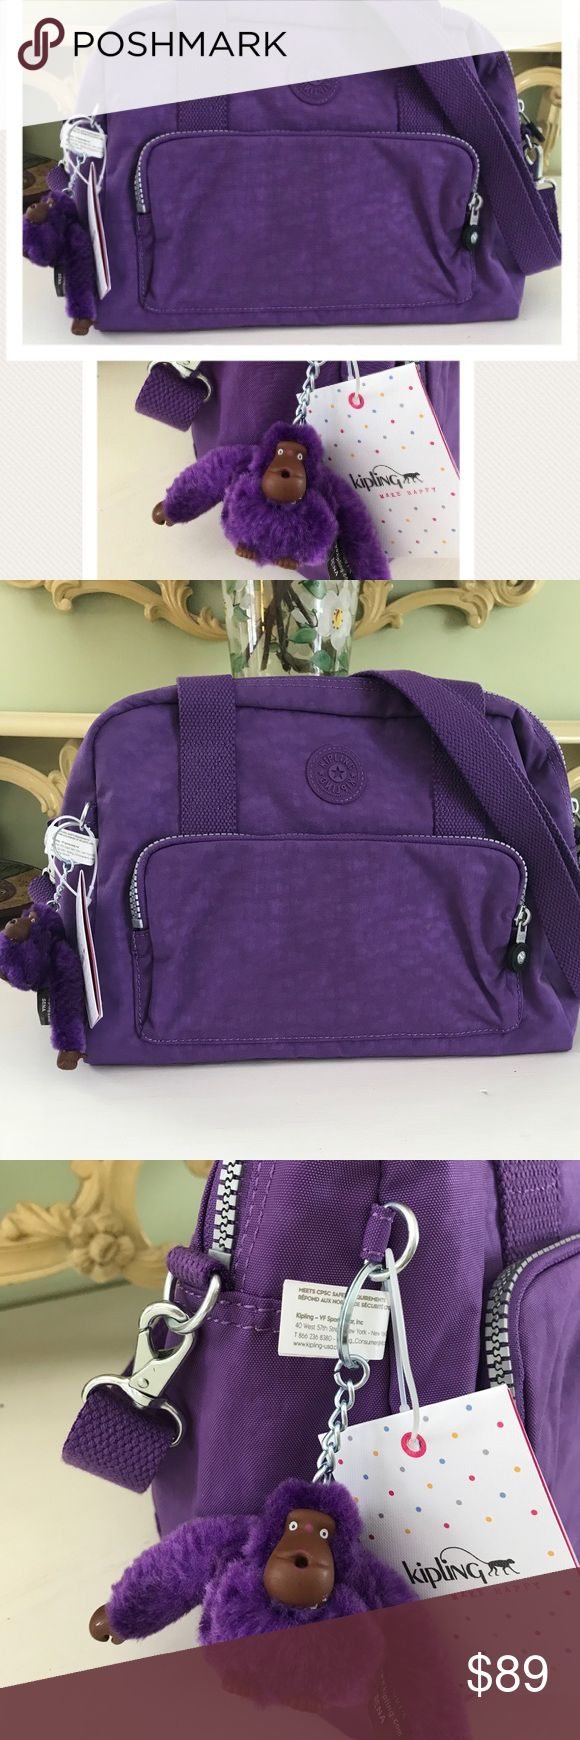 New✅Kipling❗️Purple Shoulder Bag w monkey New Kipling Handbag with purple monkey Super cute spring vibes Kipling Bags